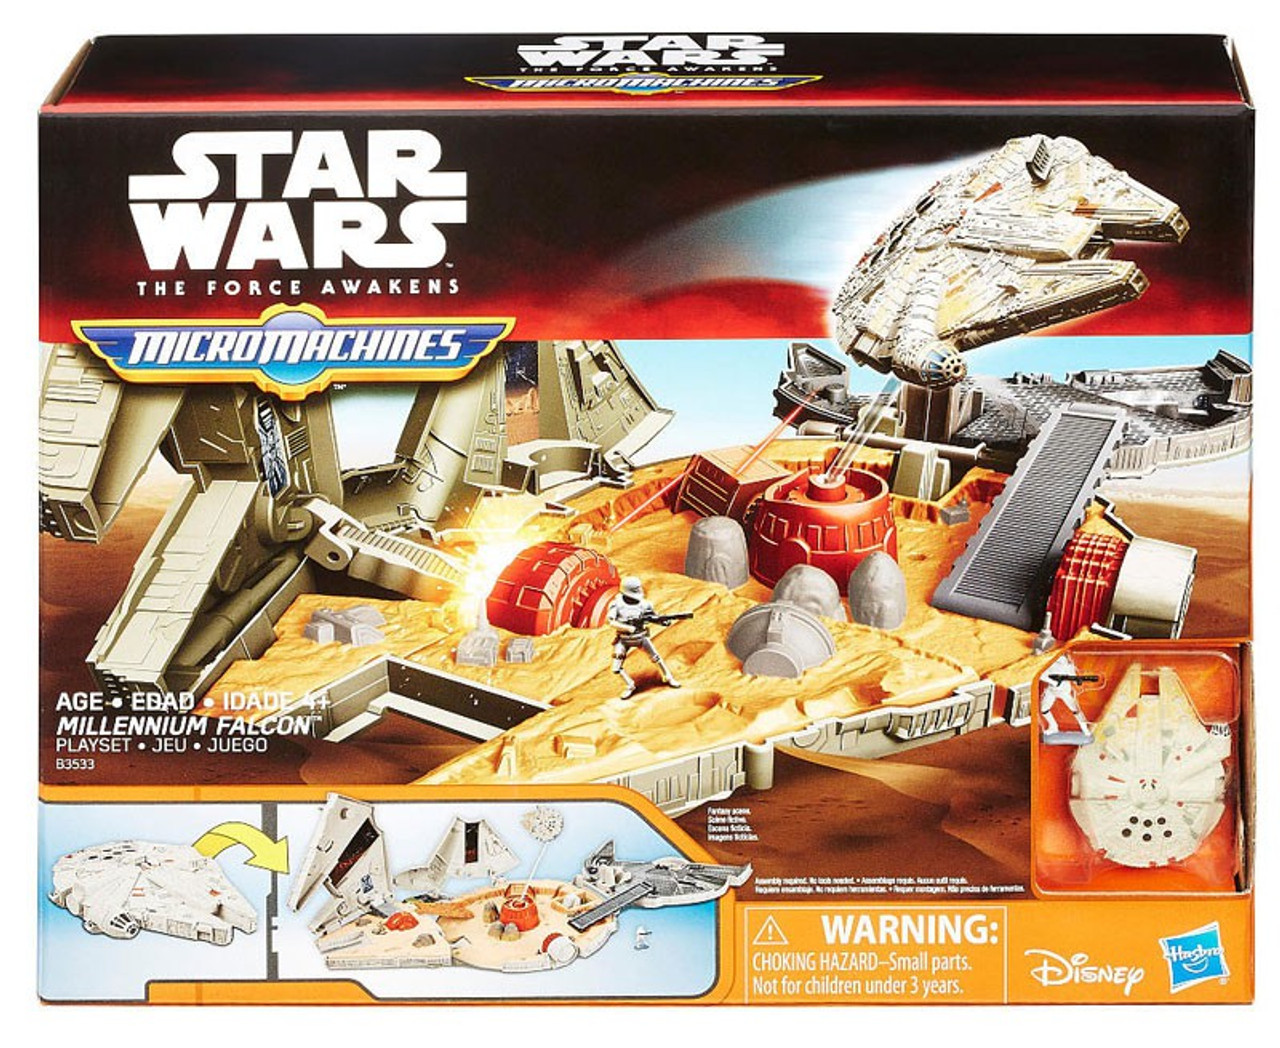 STAR WARS A NEW HOPE MICRO MACHINES 3-PACK IMPERIAL PURSUIT TOYS BRAND NEW